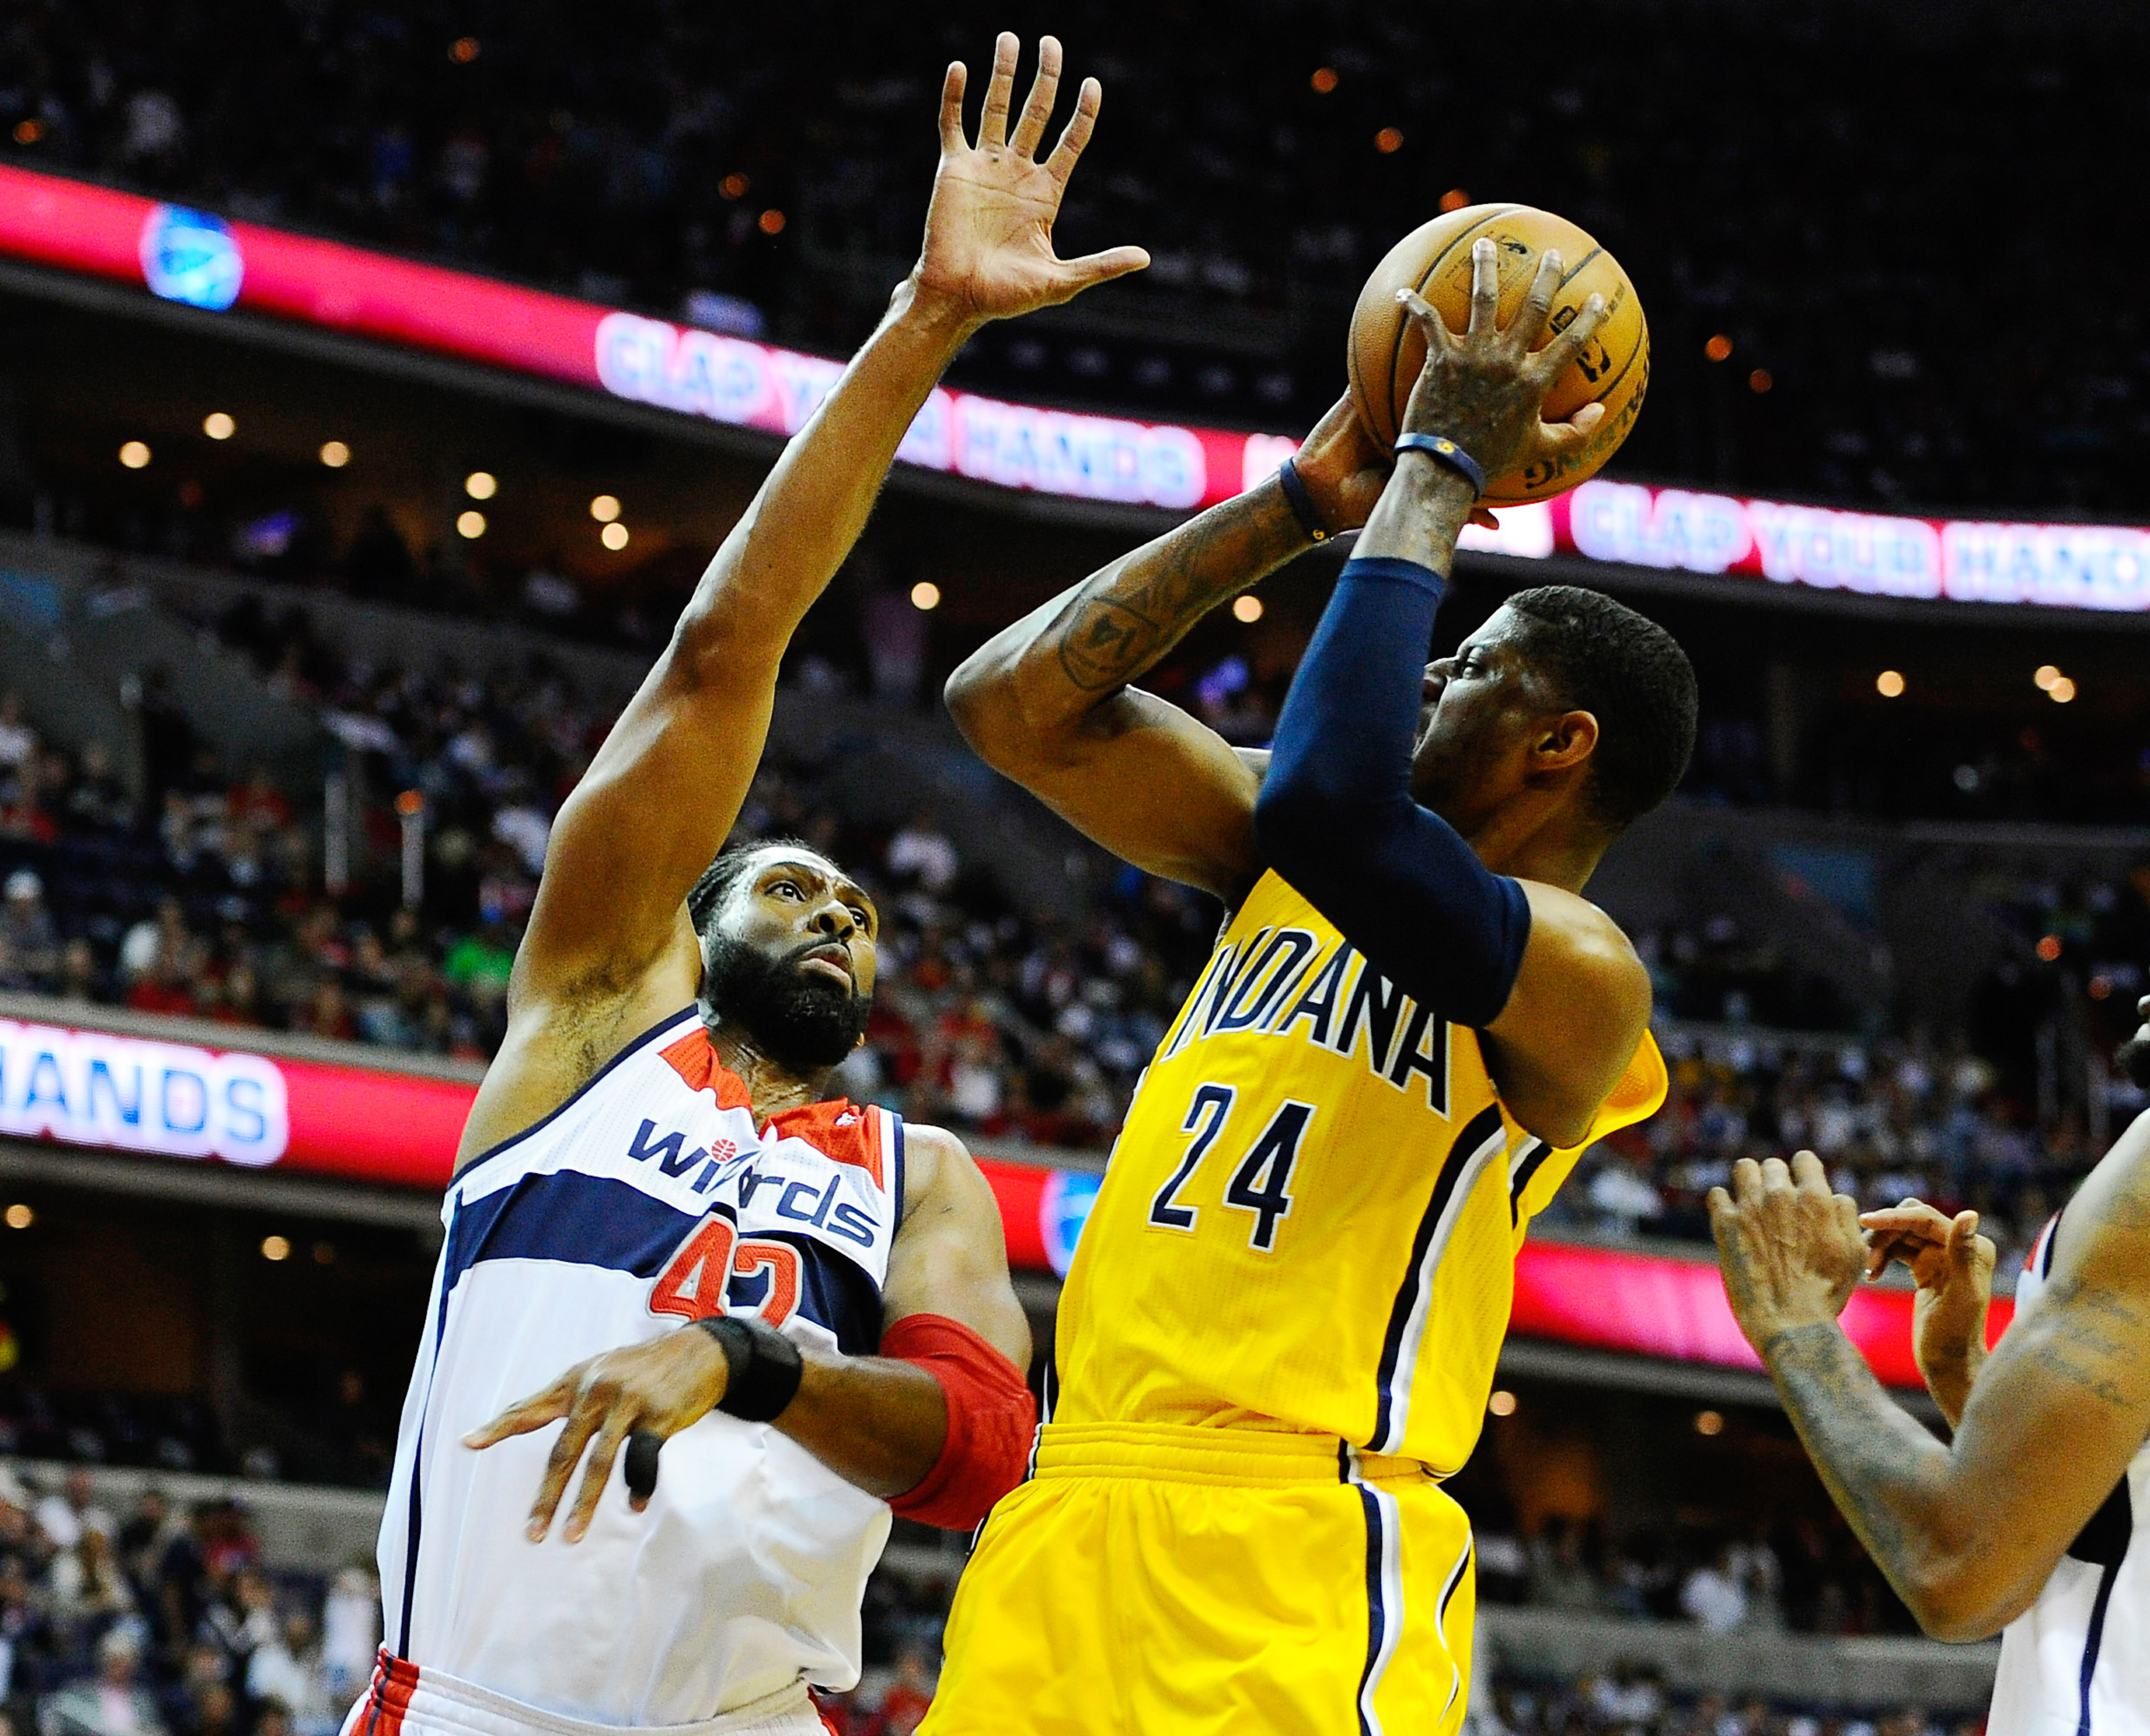 Pacers vs. Wizards final score, NBA playoffs 2014: Indiana erases 19-point deficit to nab 95-92 victory, 3-1 series lead